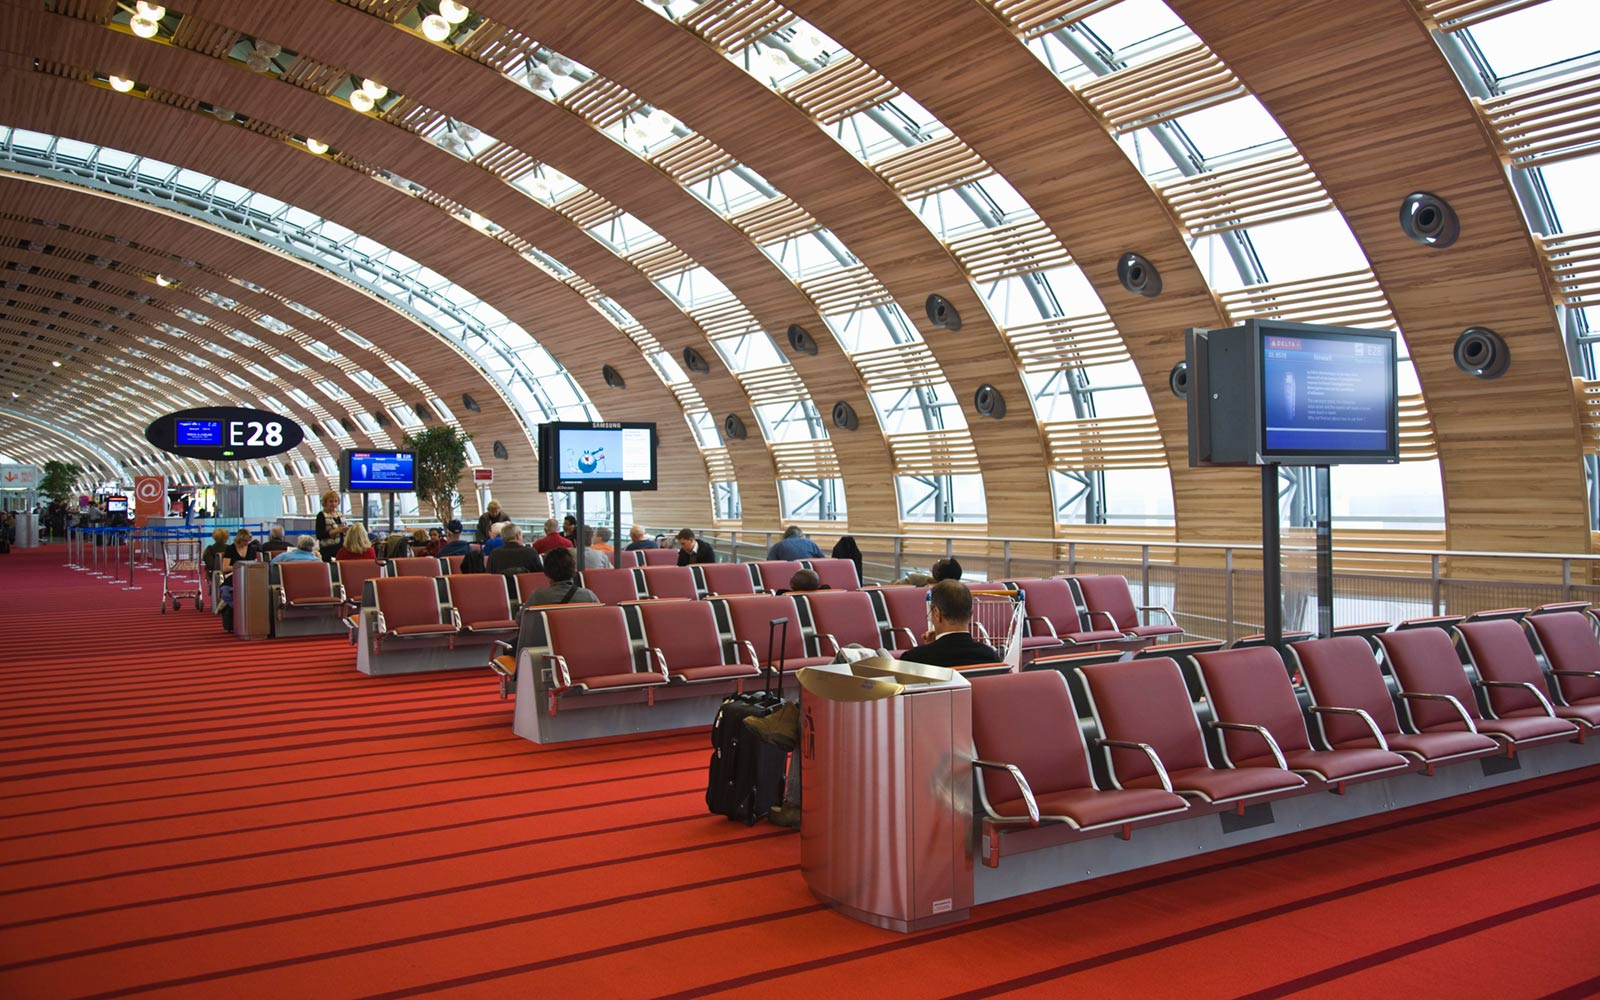 Charles de Gaulle Airport, Paris, France